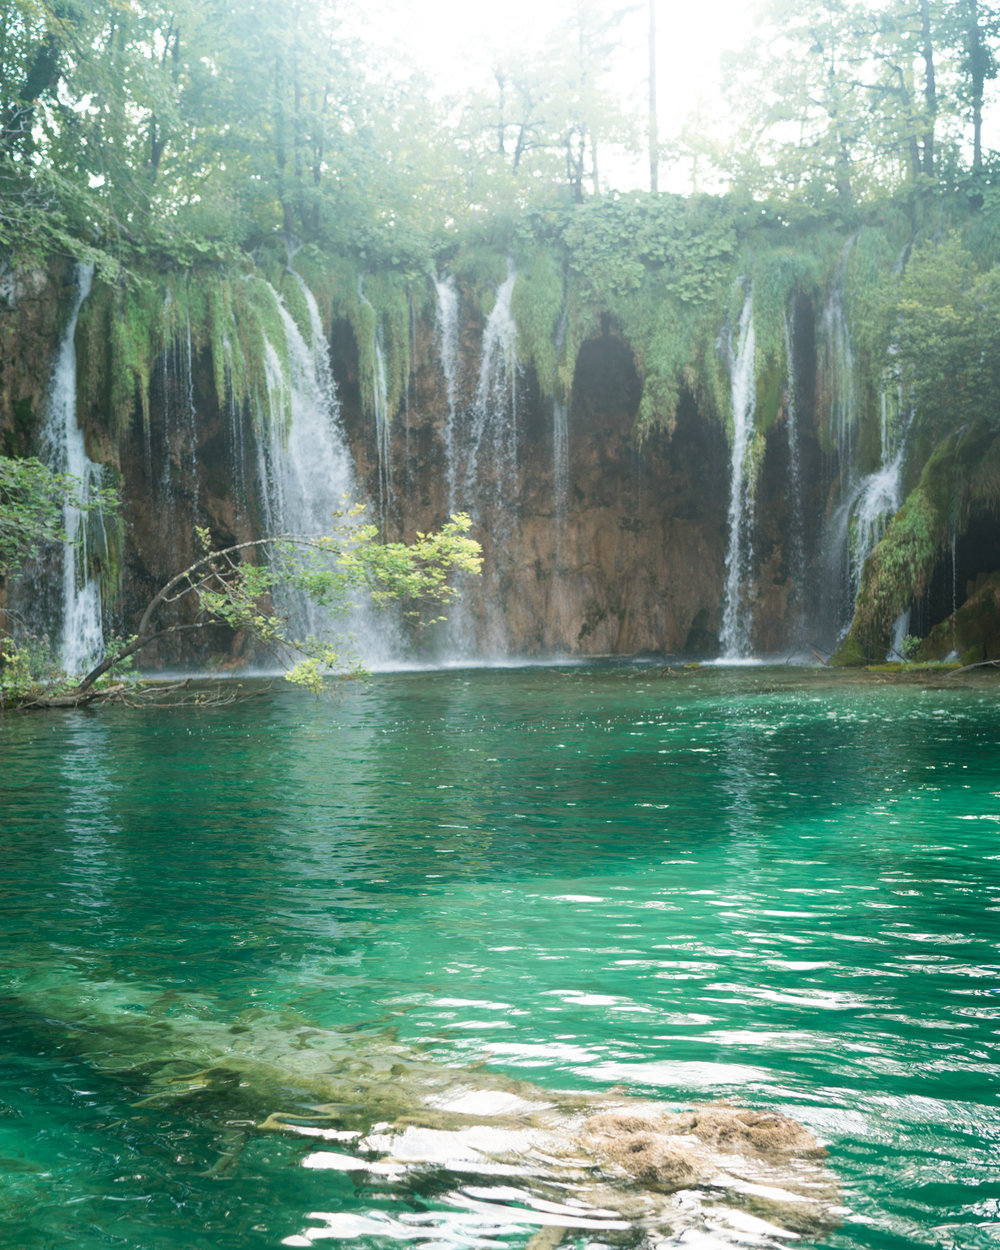 This park in Croatia has the most beautiful waterfalls